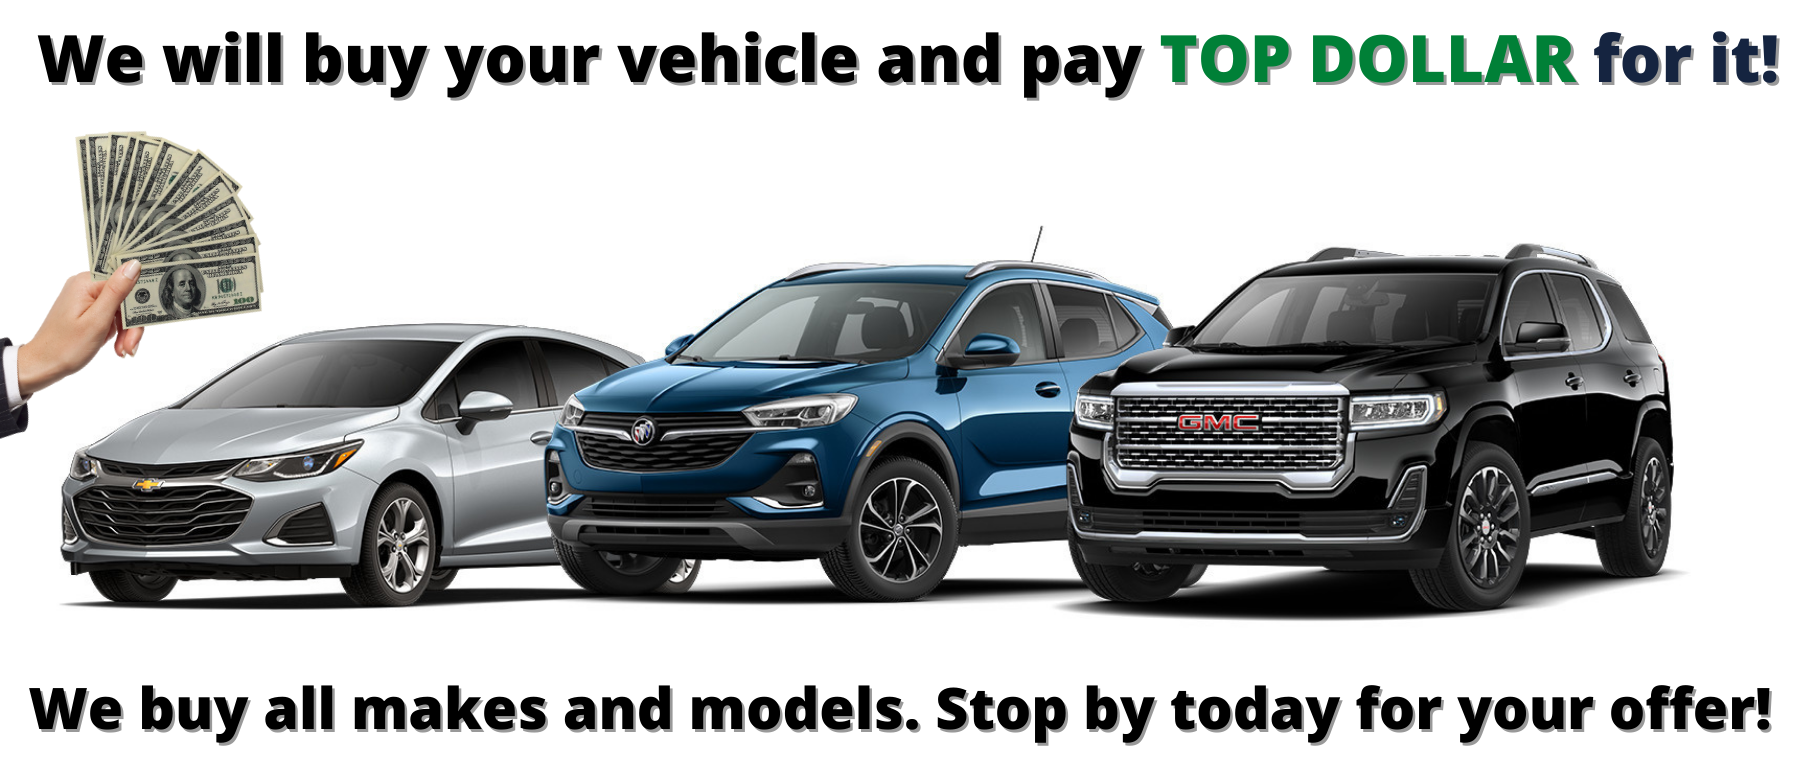 We will buy your car and pay TOP DOLLAR for it!